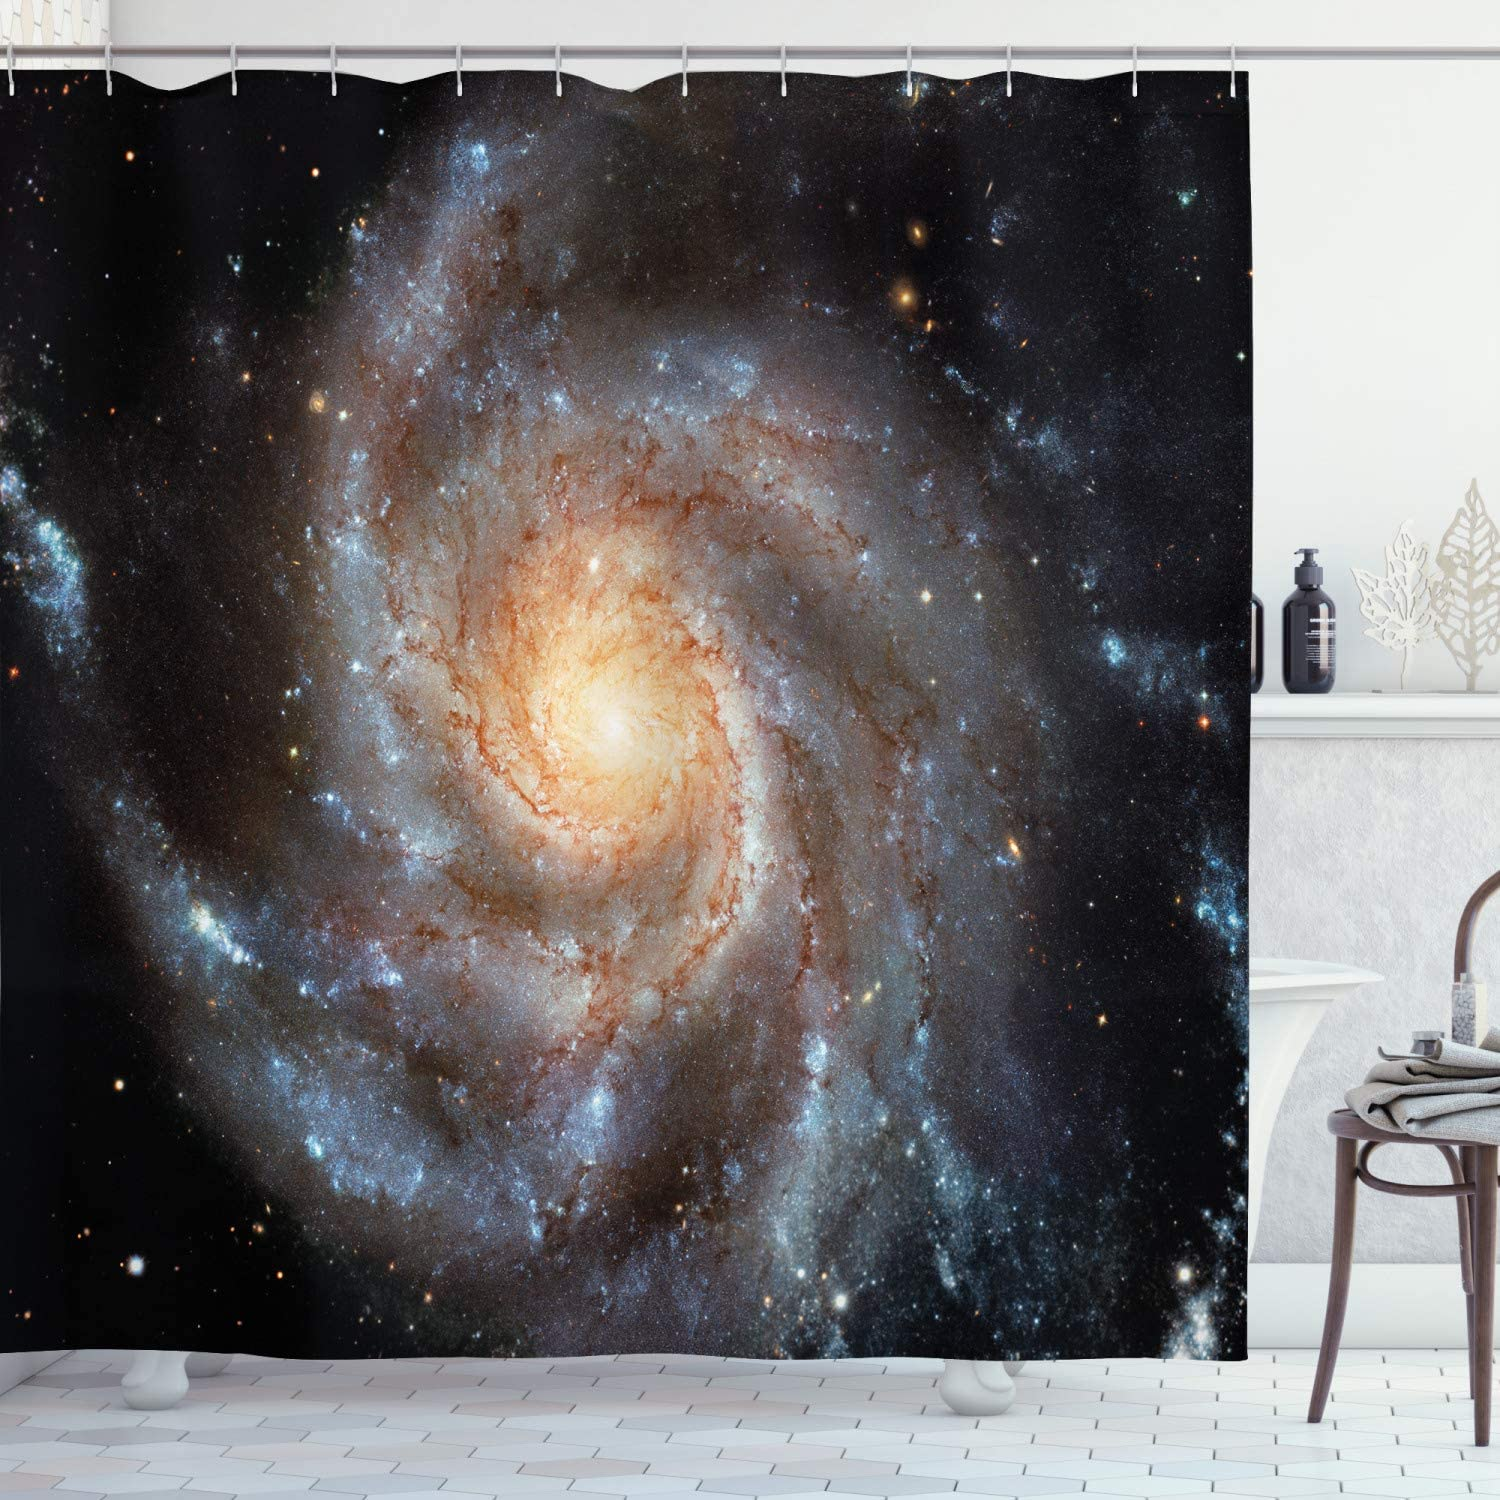 Ambesonne Galaxy Shower Curtain, Stars in Galaxy Spiral Planet Outer Space Nebula Astronomy Theme Image Print, Cloth Fabric Bathroom Decor Set with Hooks, 70